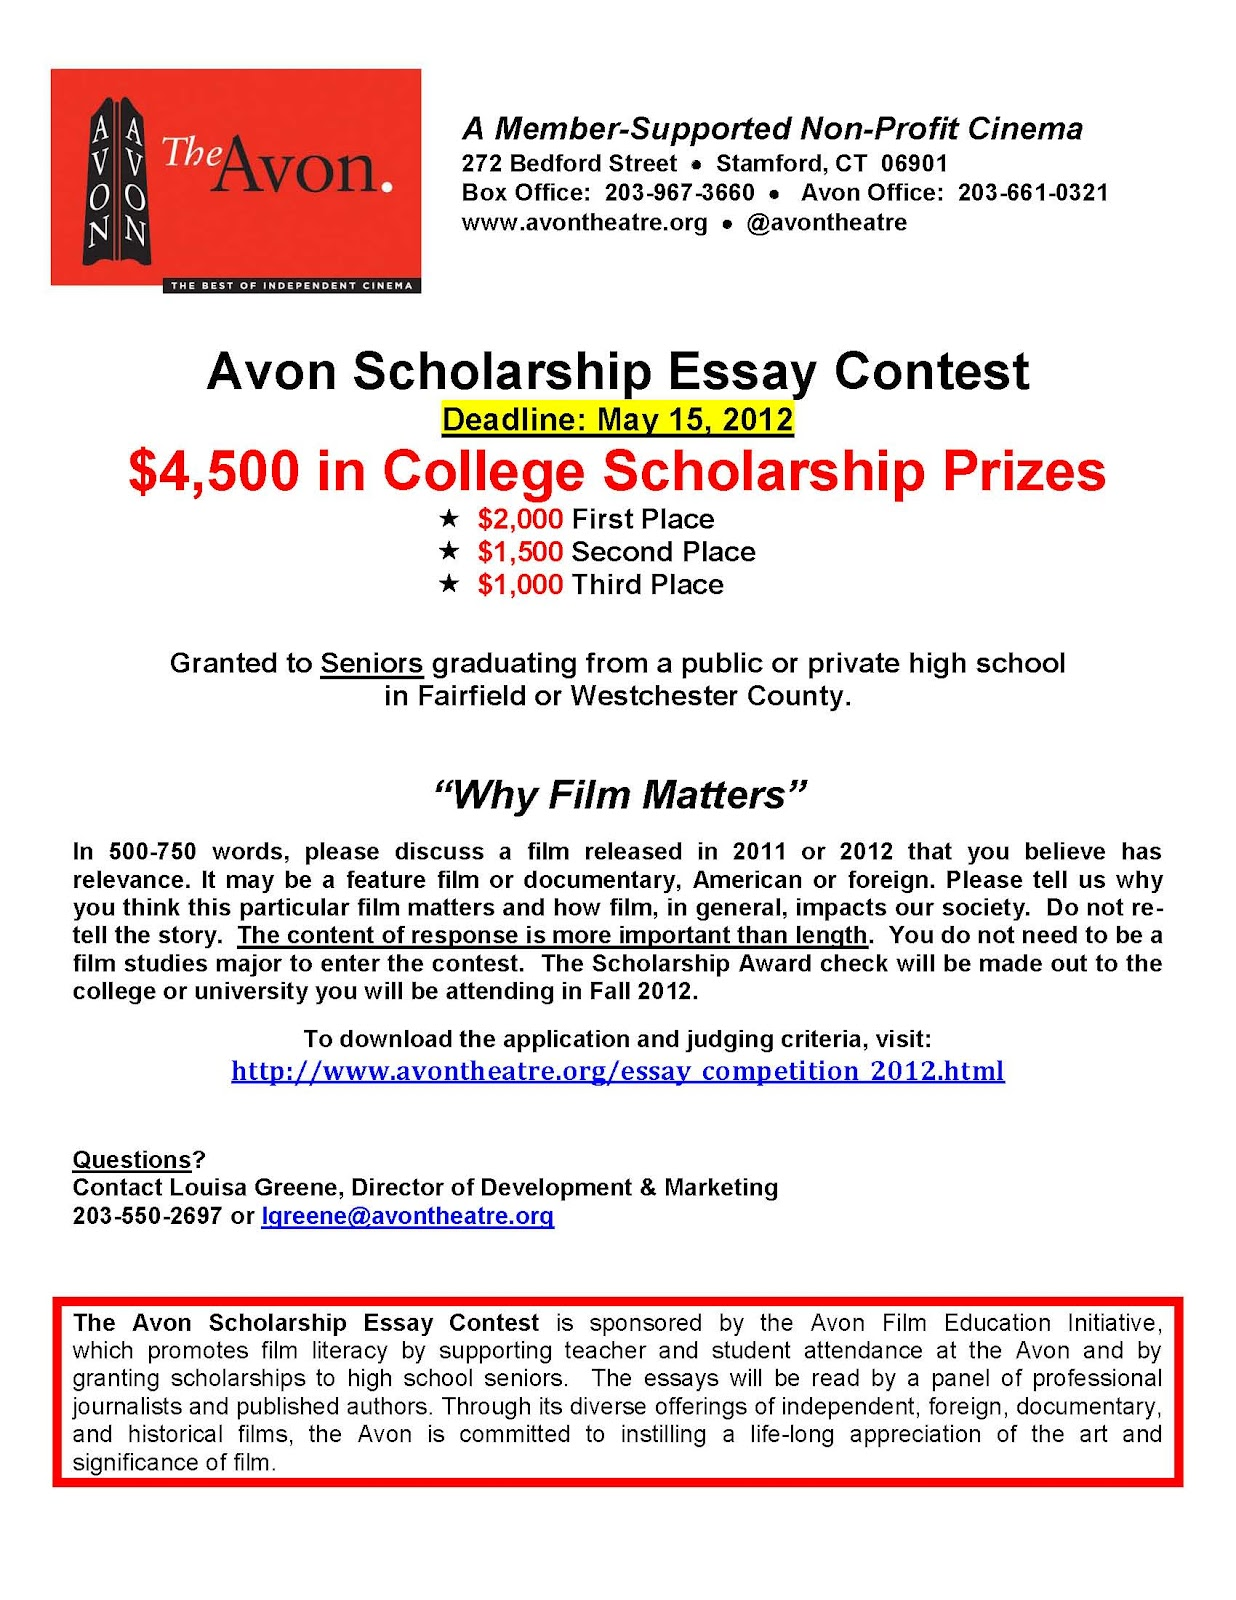 003 No Essay College Scholarship Prowler Free Scholarships For High School Seniors Avonscholarshipessaycontest2012 In Texas California Class Of Short Unbelievable With Without Essays Required 2017 Full